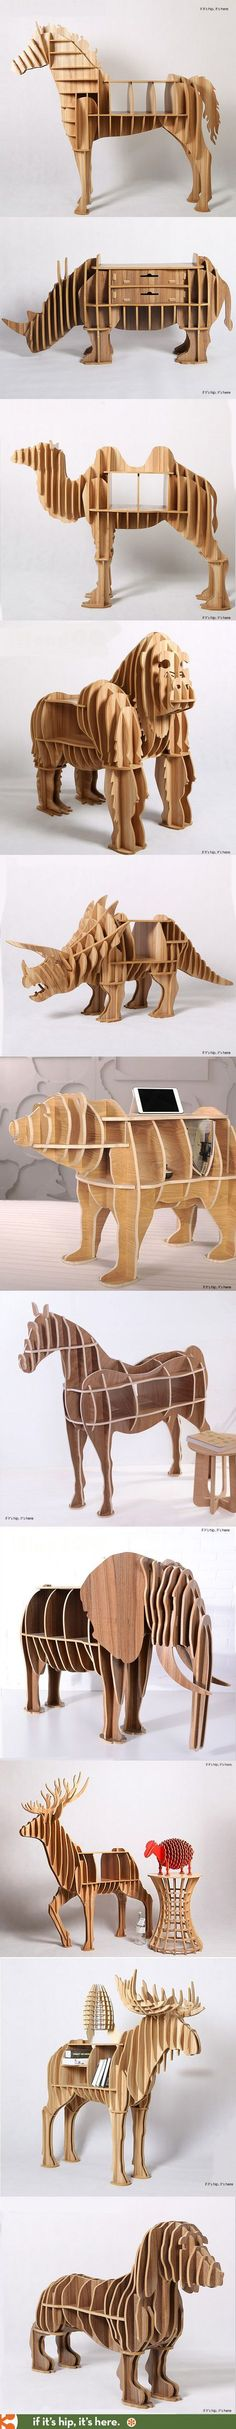 The 20 most awesome animal bookcases, desks and end tables you can buy. They ship flat-packed and are easily assembled without nails or glue. More at http://www.ifitshipitshere.com/awesome-animal-furniture/ 동물모양으로 디자인해서 보는 재미가 있고 서랍이나 책상 등으로 활용할수있어 실용성있다